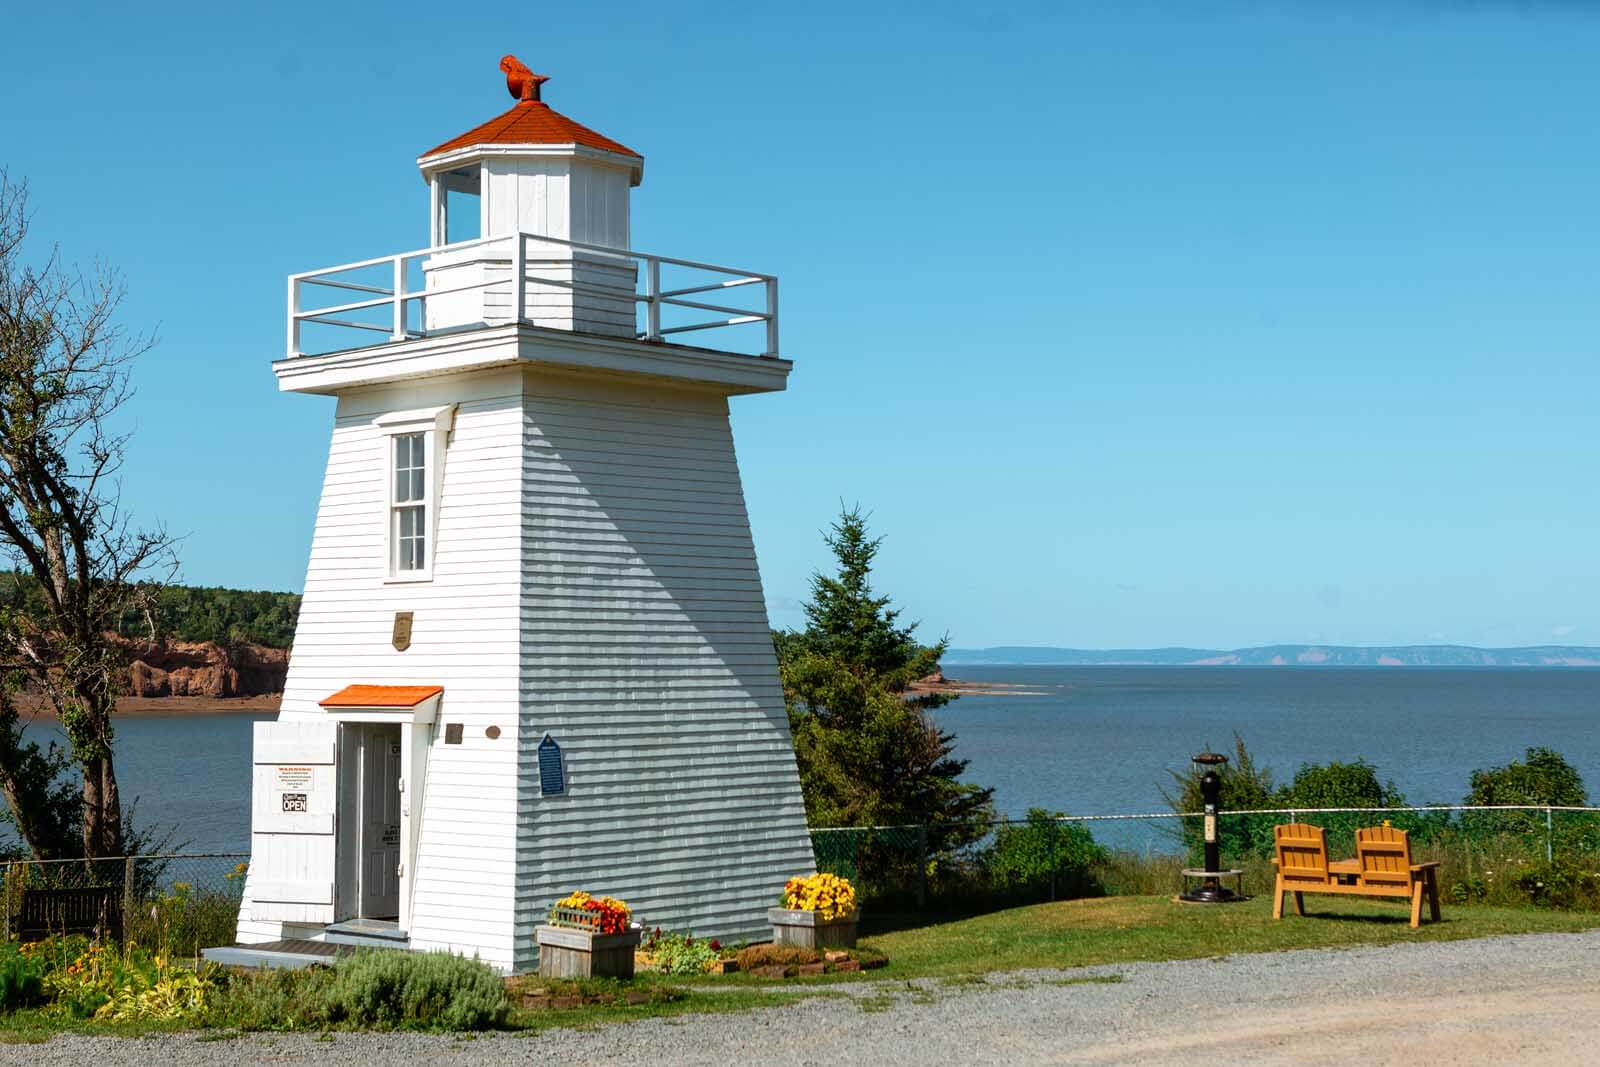 Walton Lighthouse at the Bay of Fundy in Nova Scotia